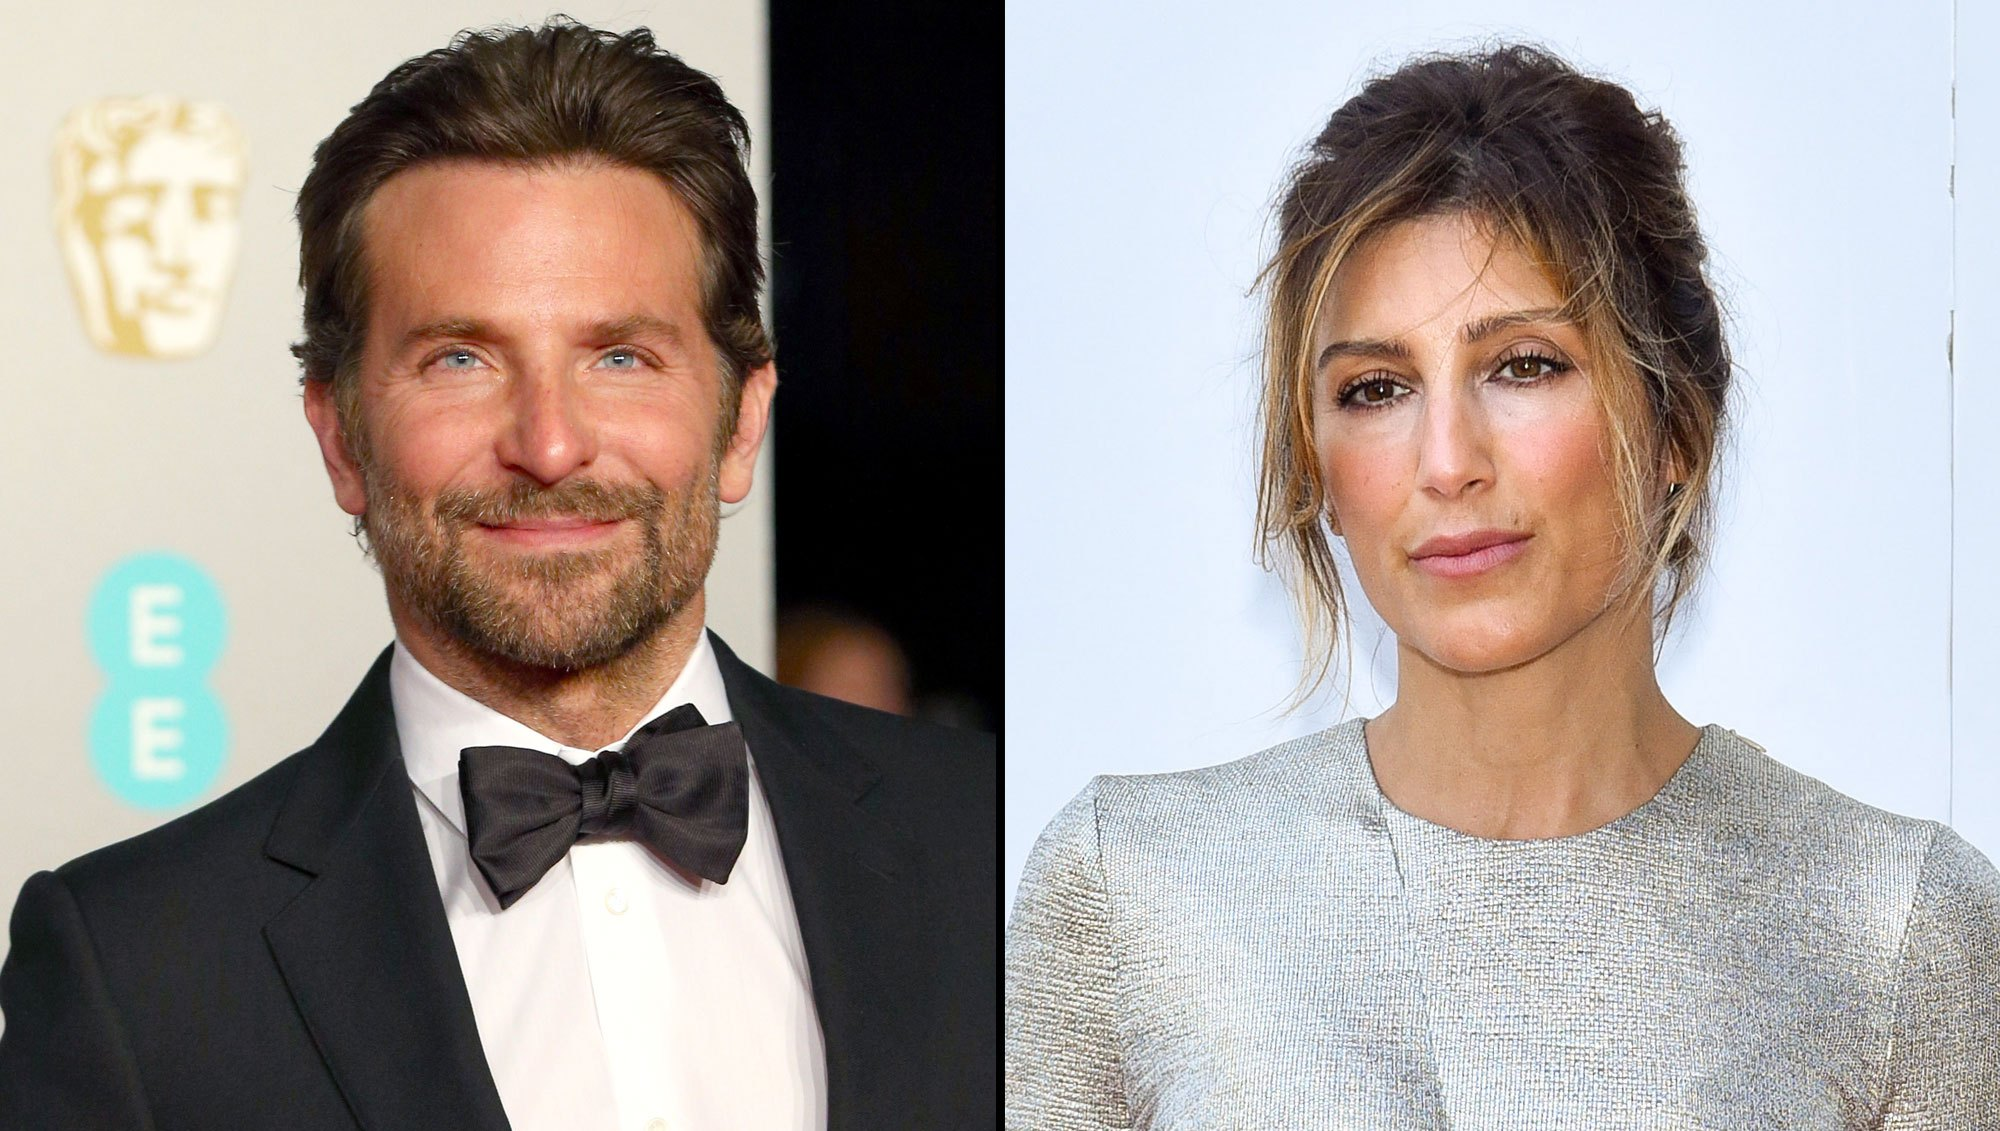 Jennifer Esposito Laughs at Rumors of Lady Gaga, Bradley Cooper Romance